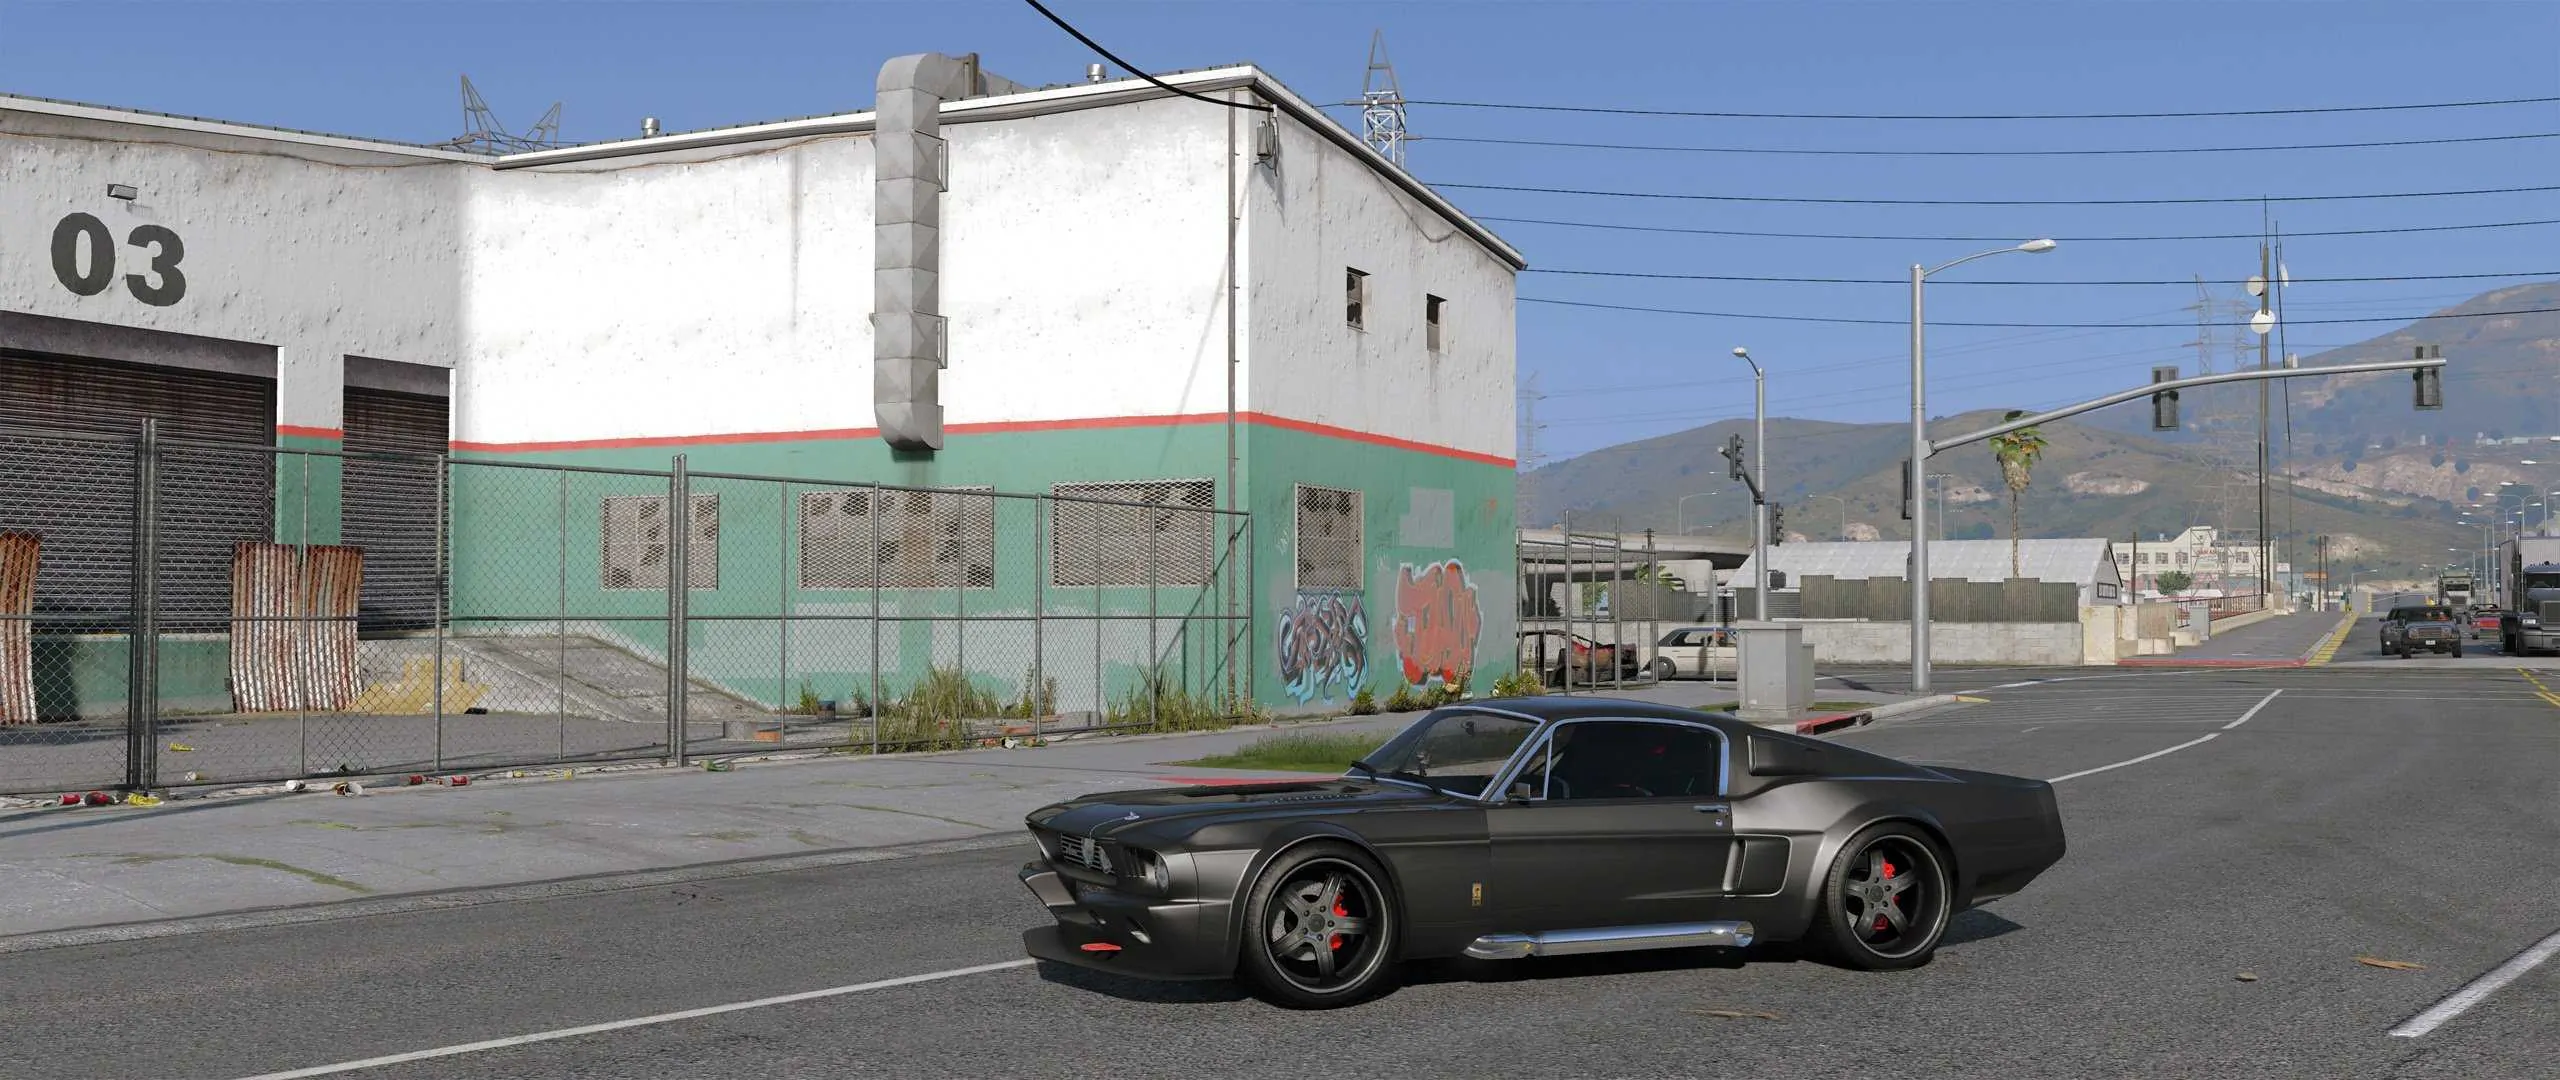 how to become a gta 5 online modder xbox 360